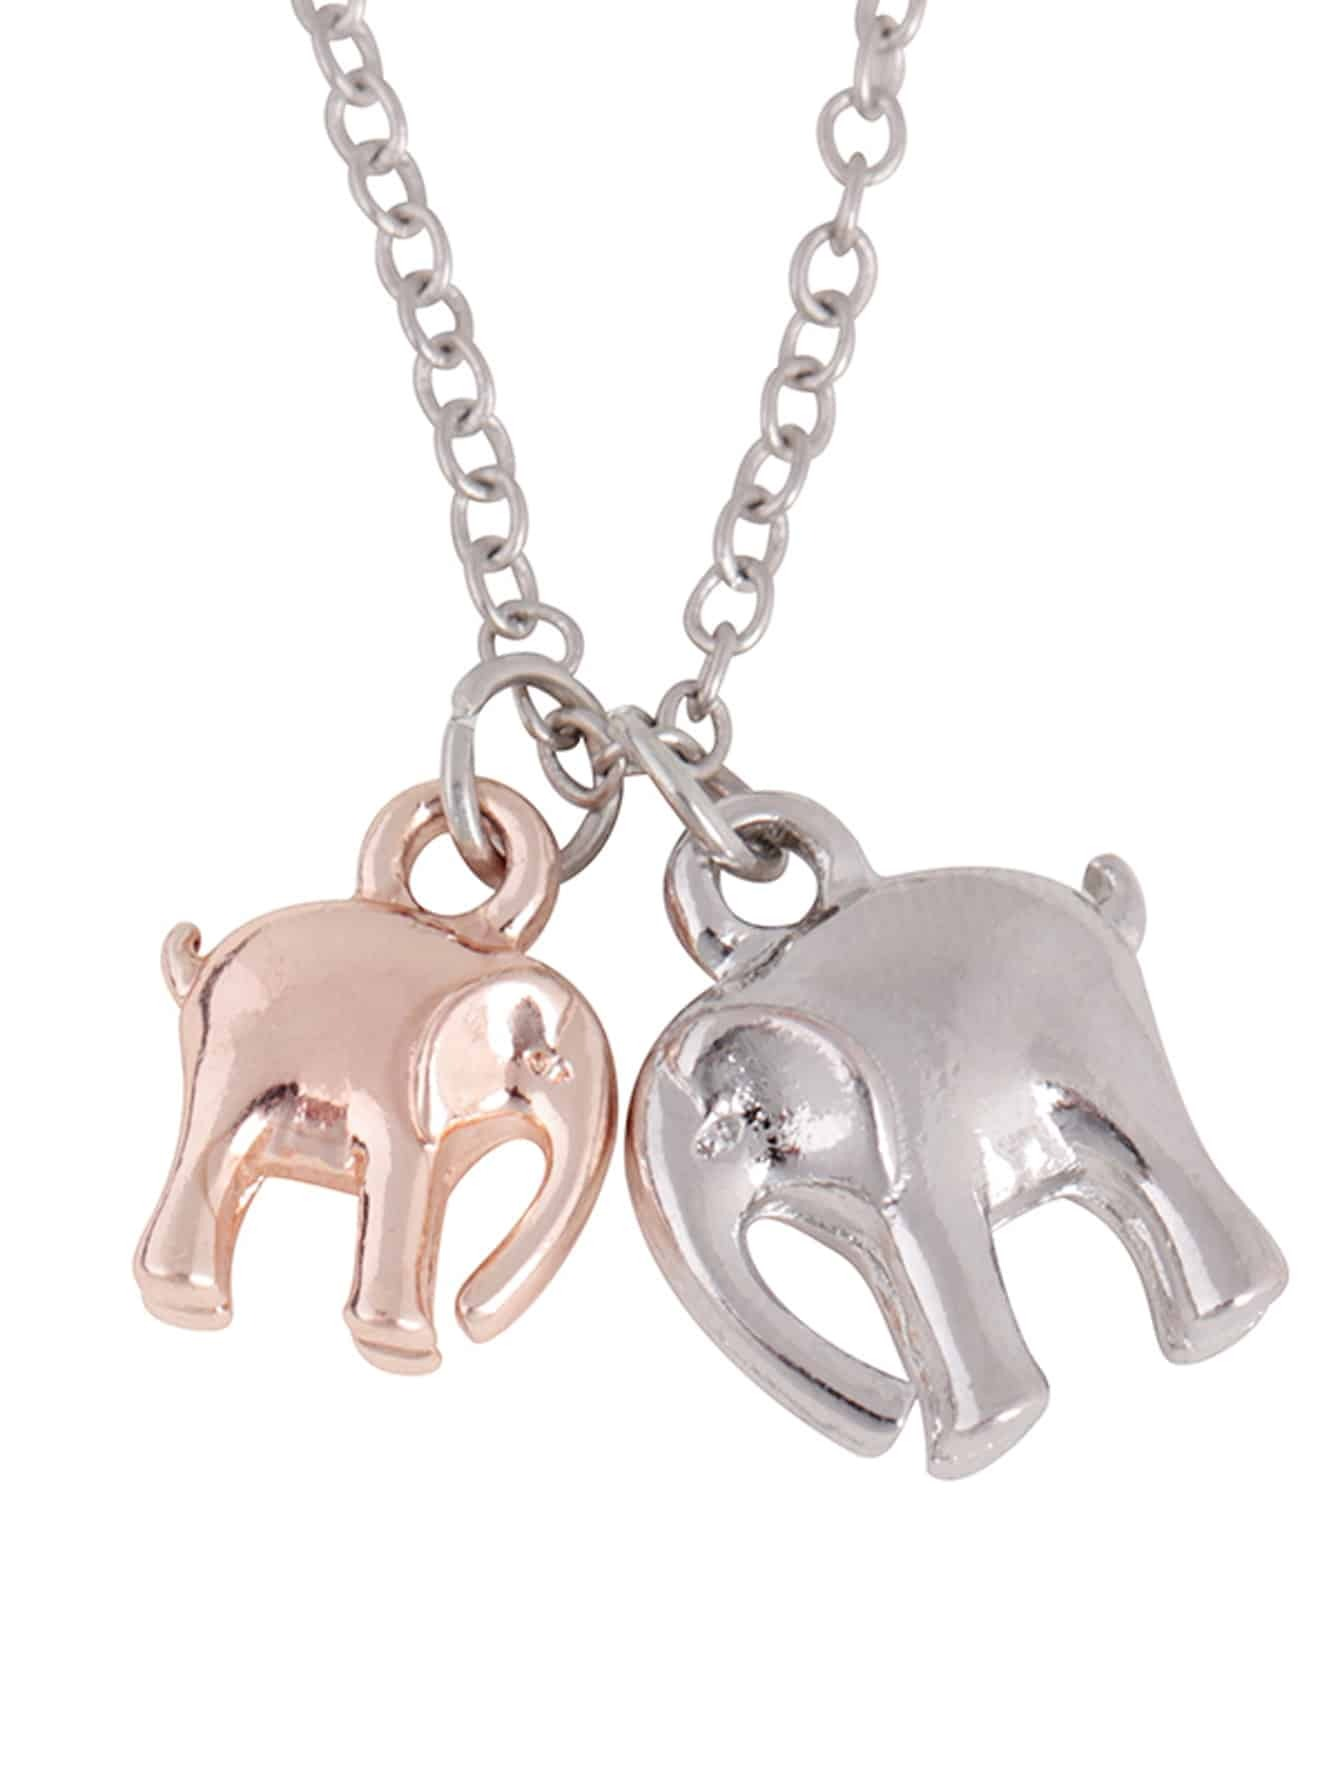 Double Elephant Pendant Chain Necklace double ring letter link chain pendant necklace